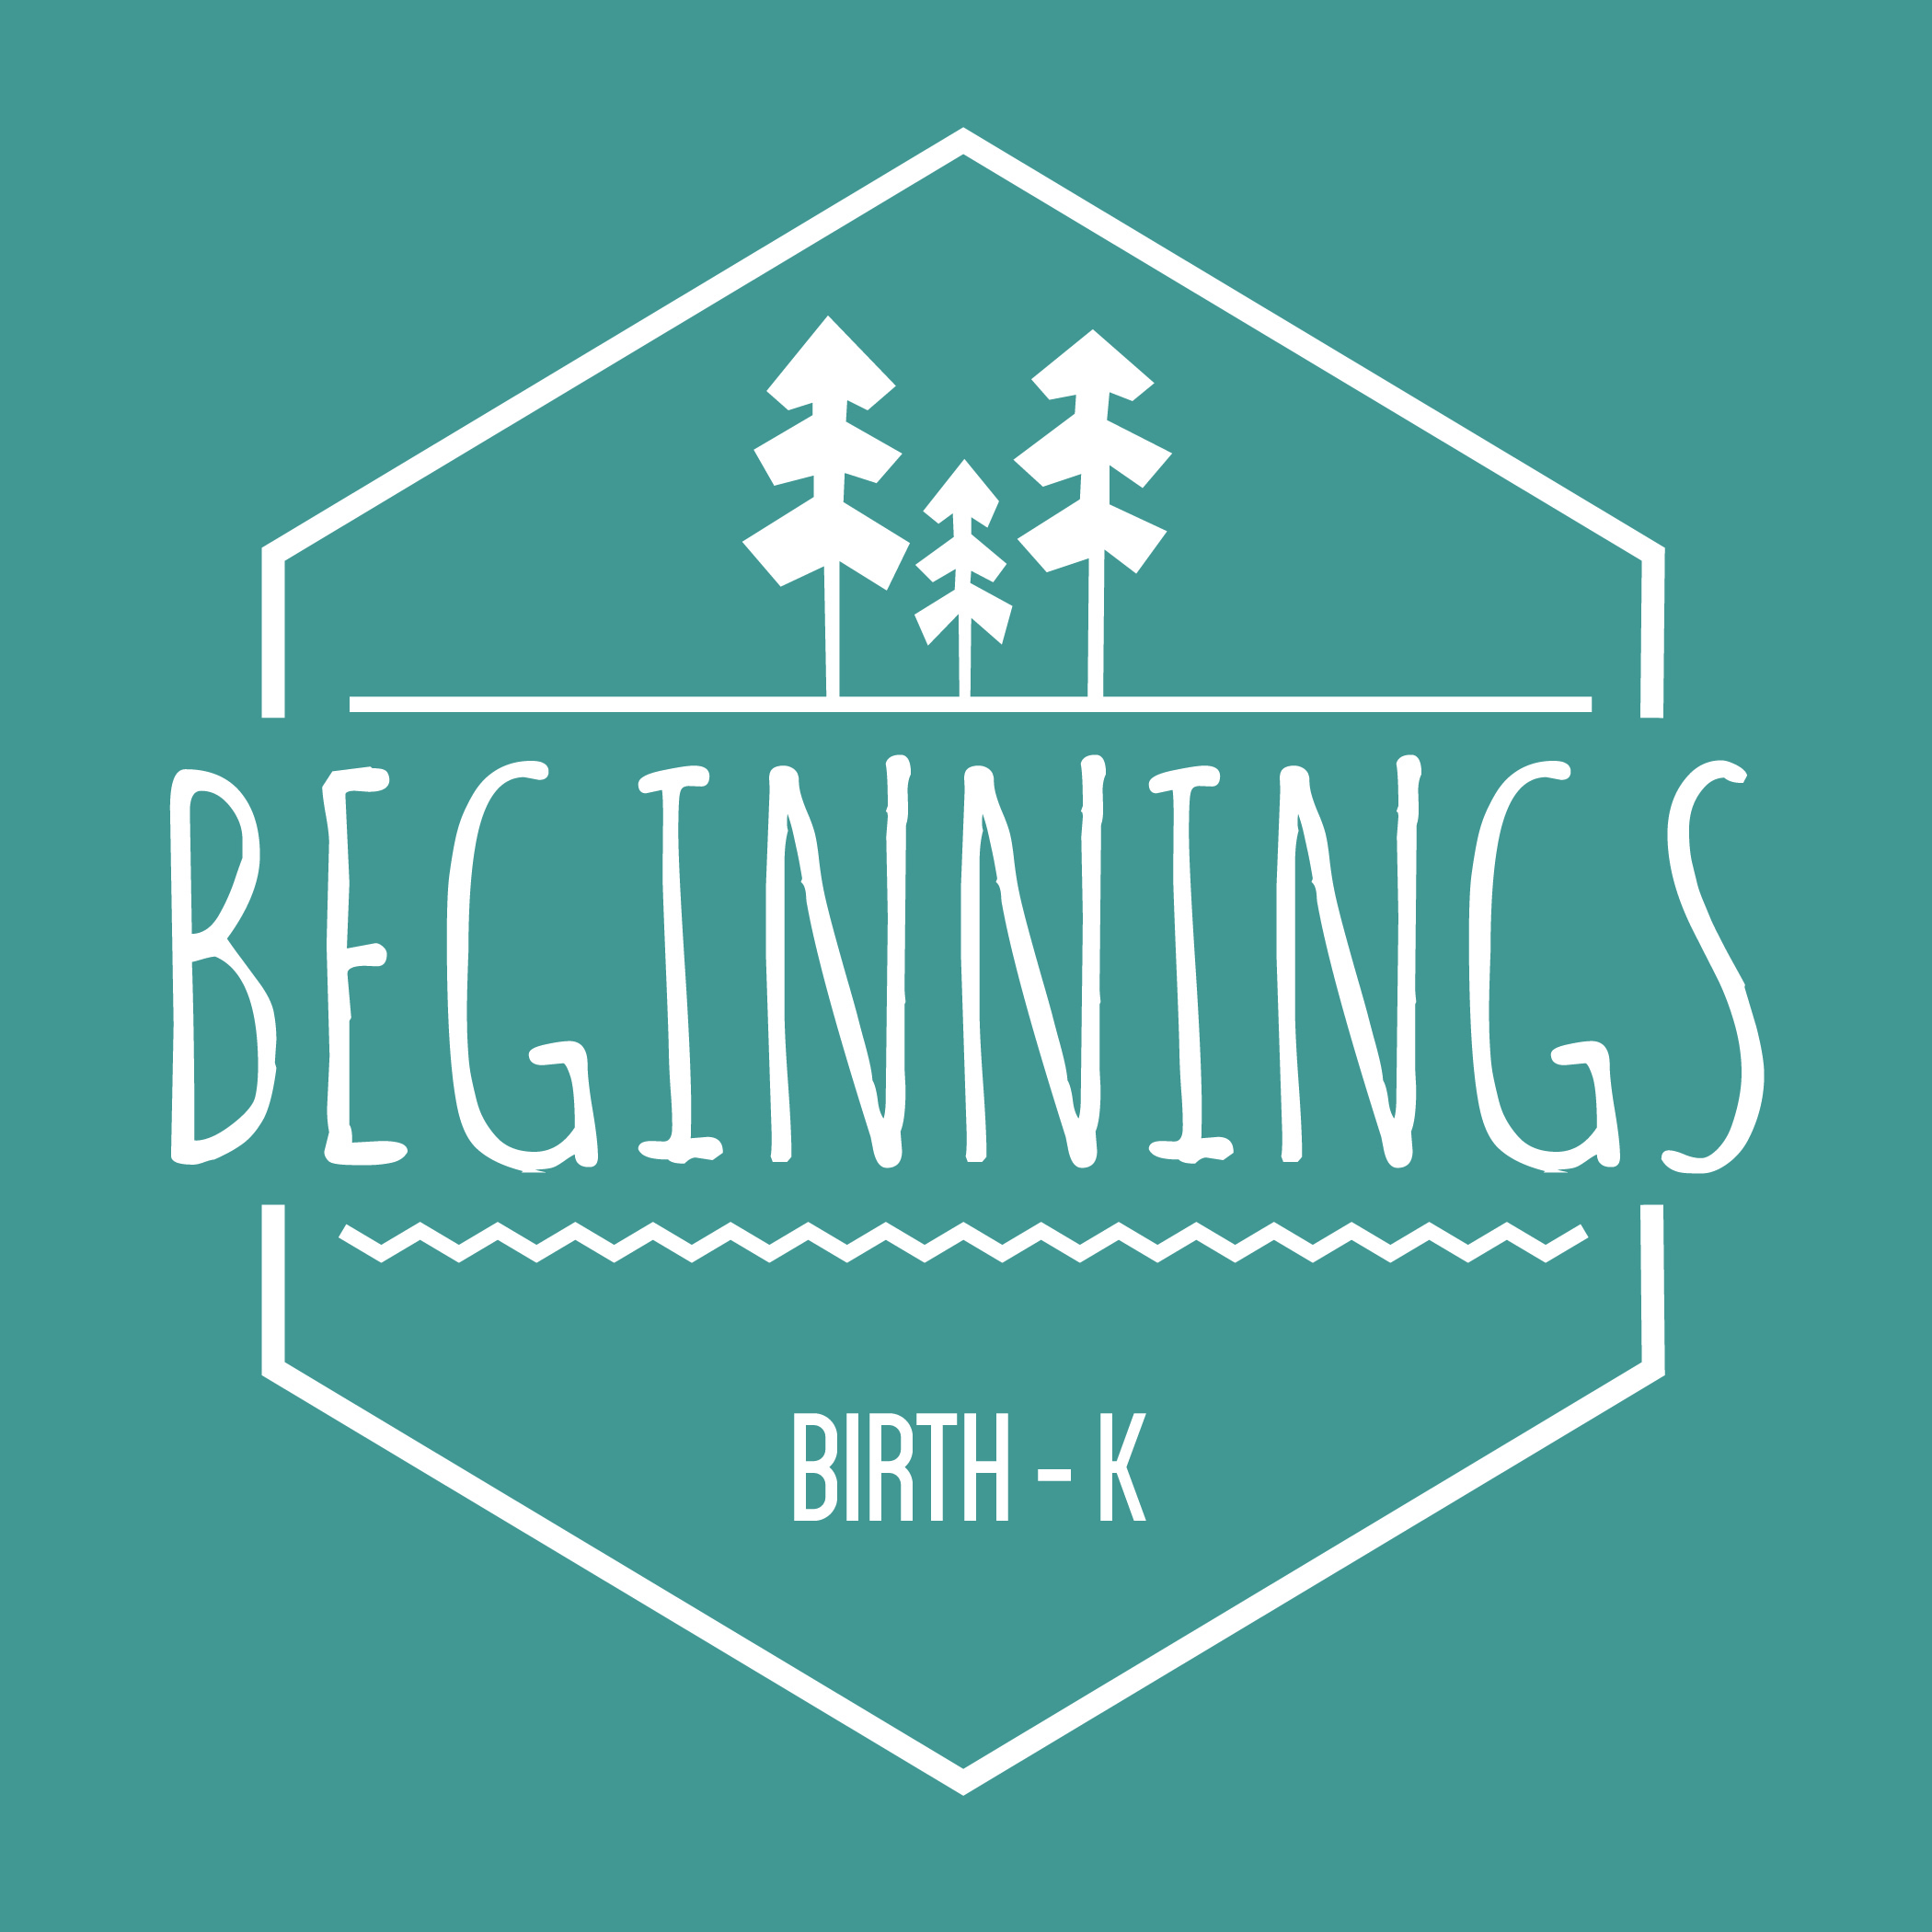 Kids Ministries Logo_Beginnings-01.jpg